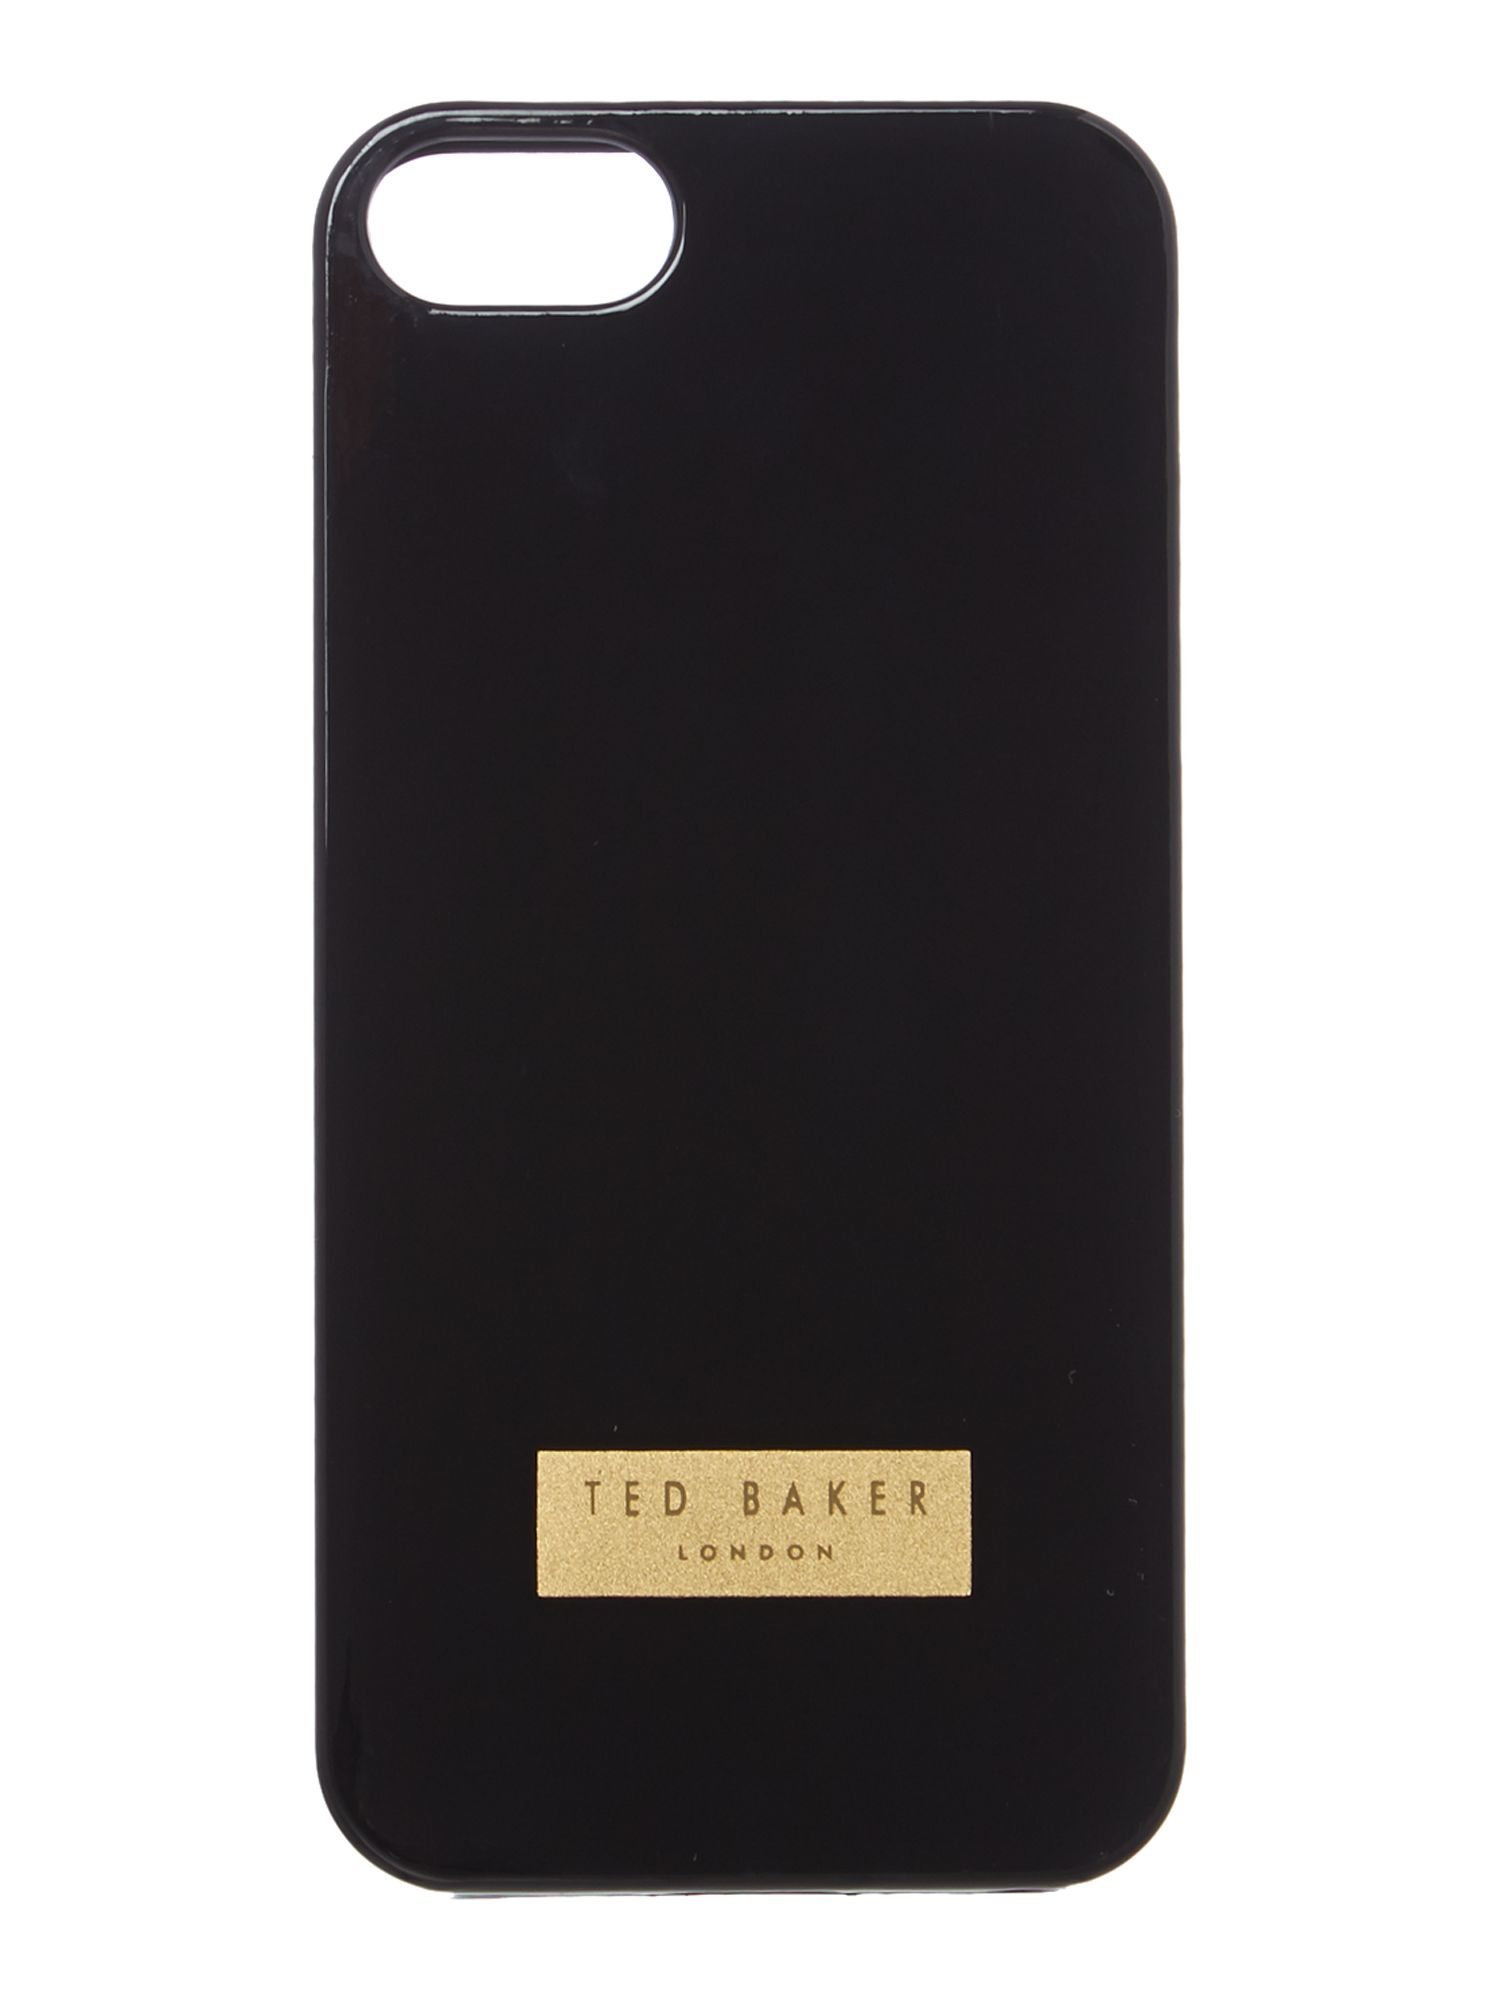 Jelly black iPhone 5 case